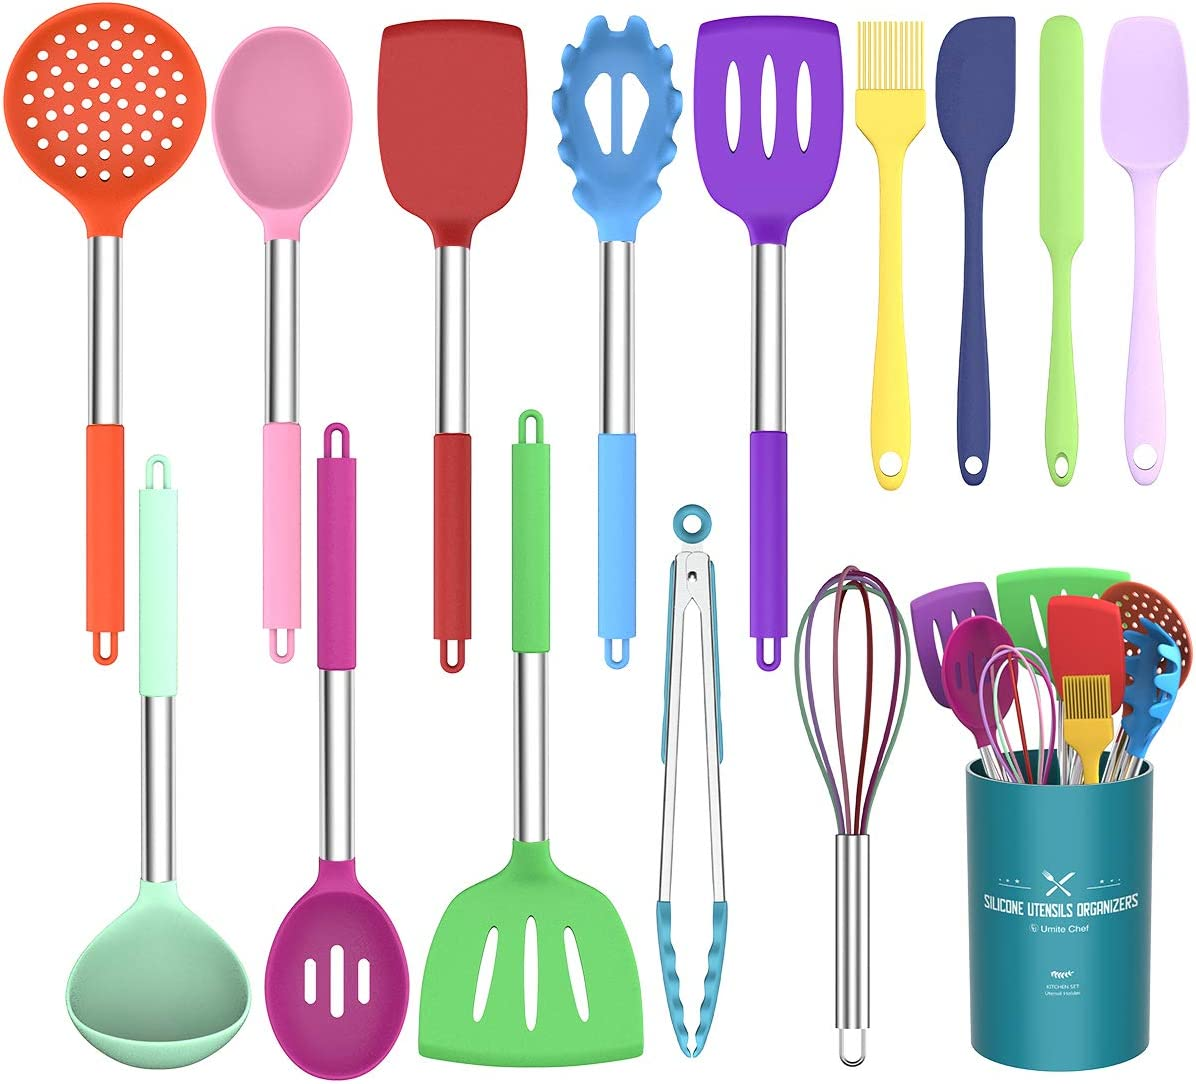 Umite Chef Kitchen Utensils Set, 15 pcs Silicone Cooking Kitchen Utensils Set, Heat Resistant Non-stick BPA-Free Silicone Stainless Steel Handle Turner Spatula Spoon Tongs Whisk Cookware (Colorful)